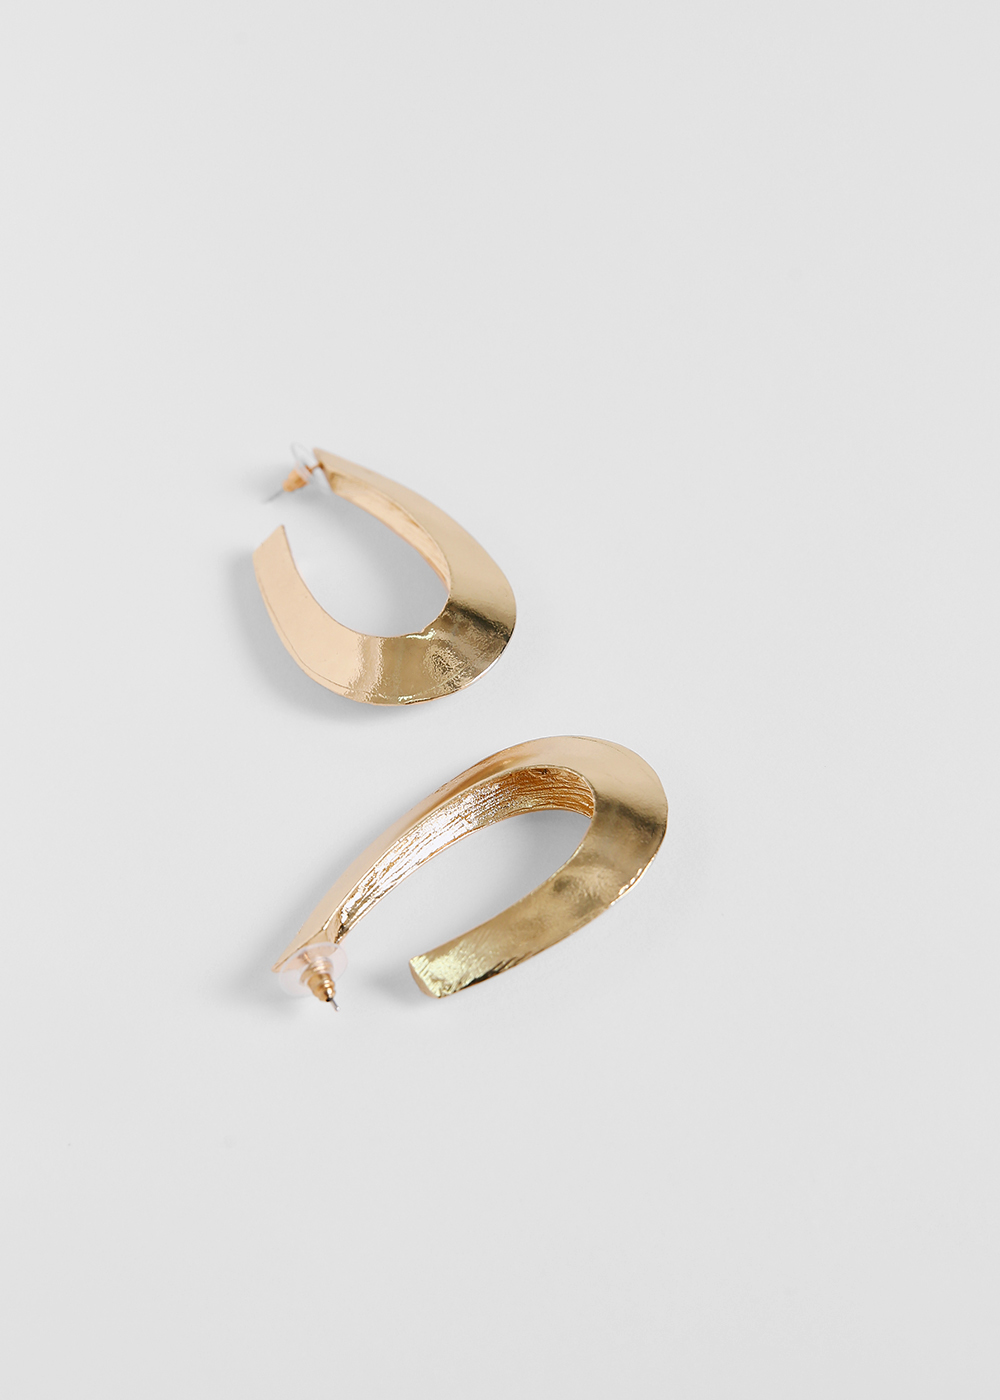 Langley Gold Hoop Earrings